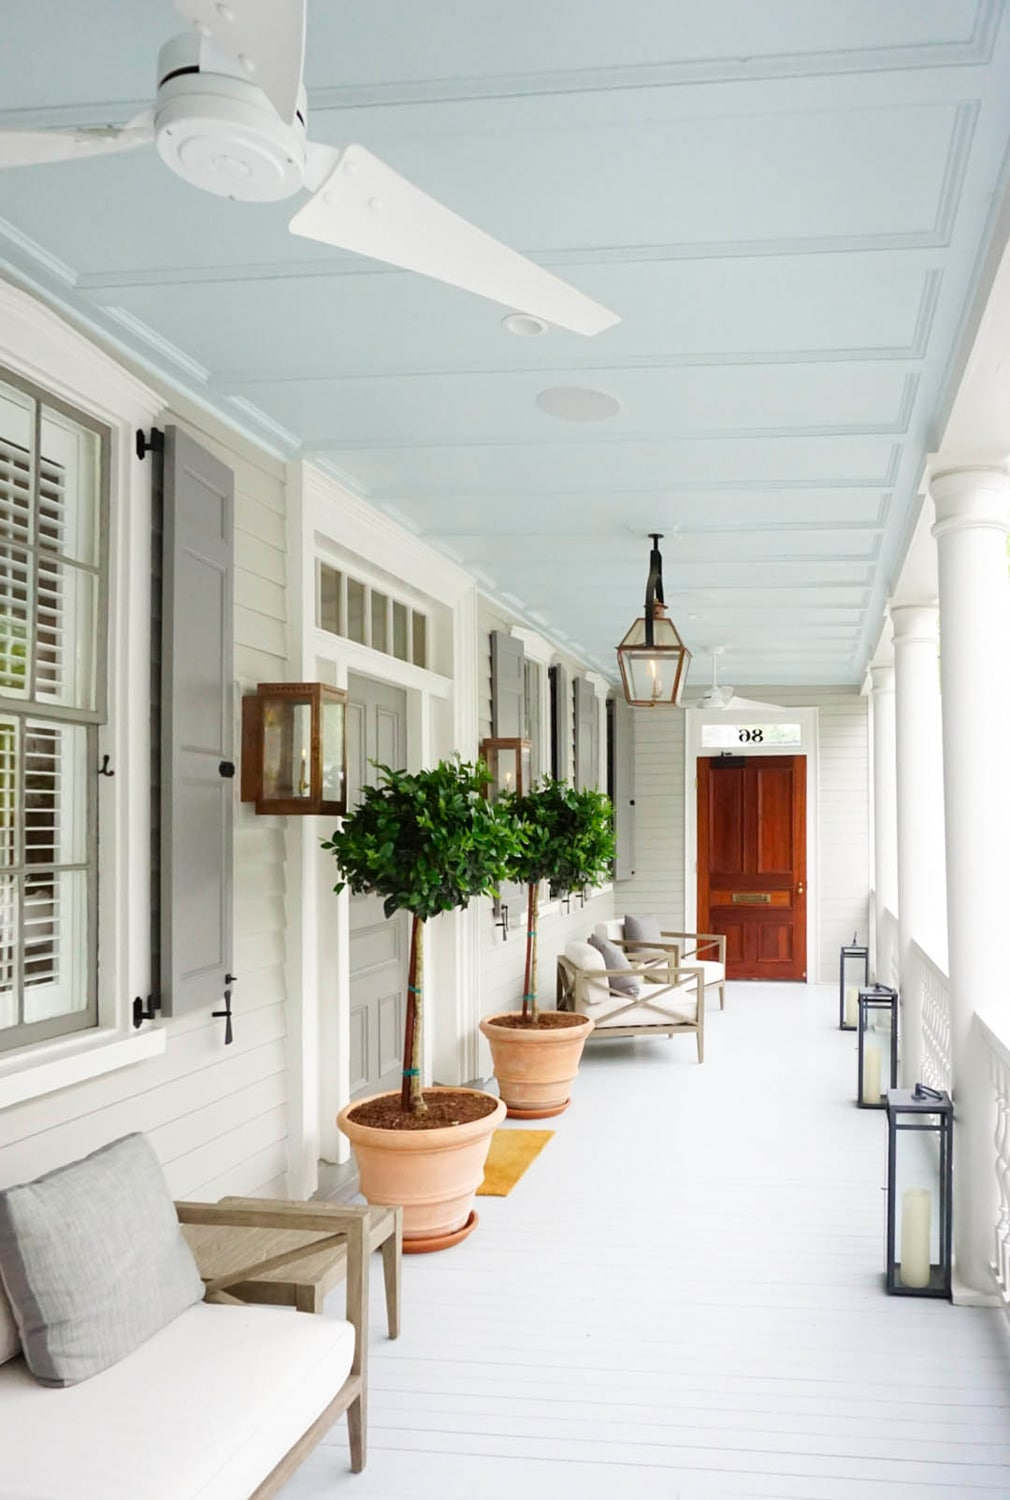 Ashley Brooke Designs show off the Piazzas 86 Cannon in Charleston, SC